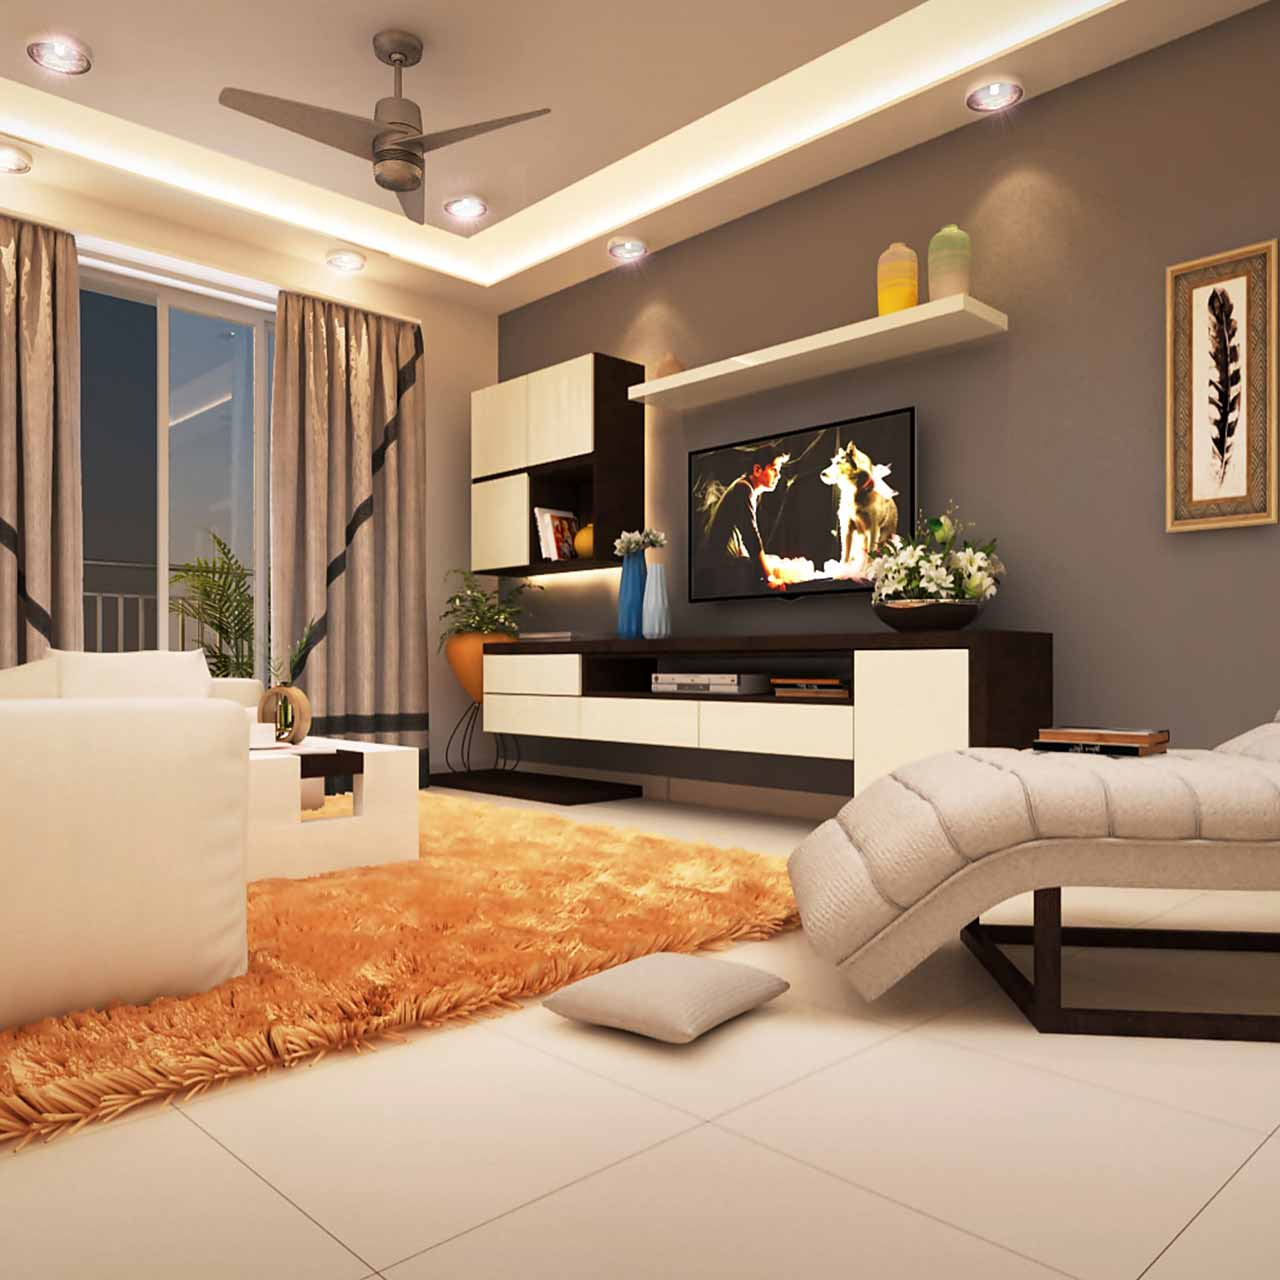 Eclectic style living room design with a bold couch, a coffee table with a metallic glint and pillows